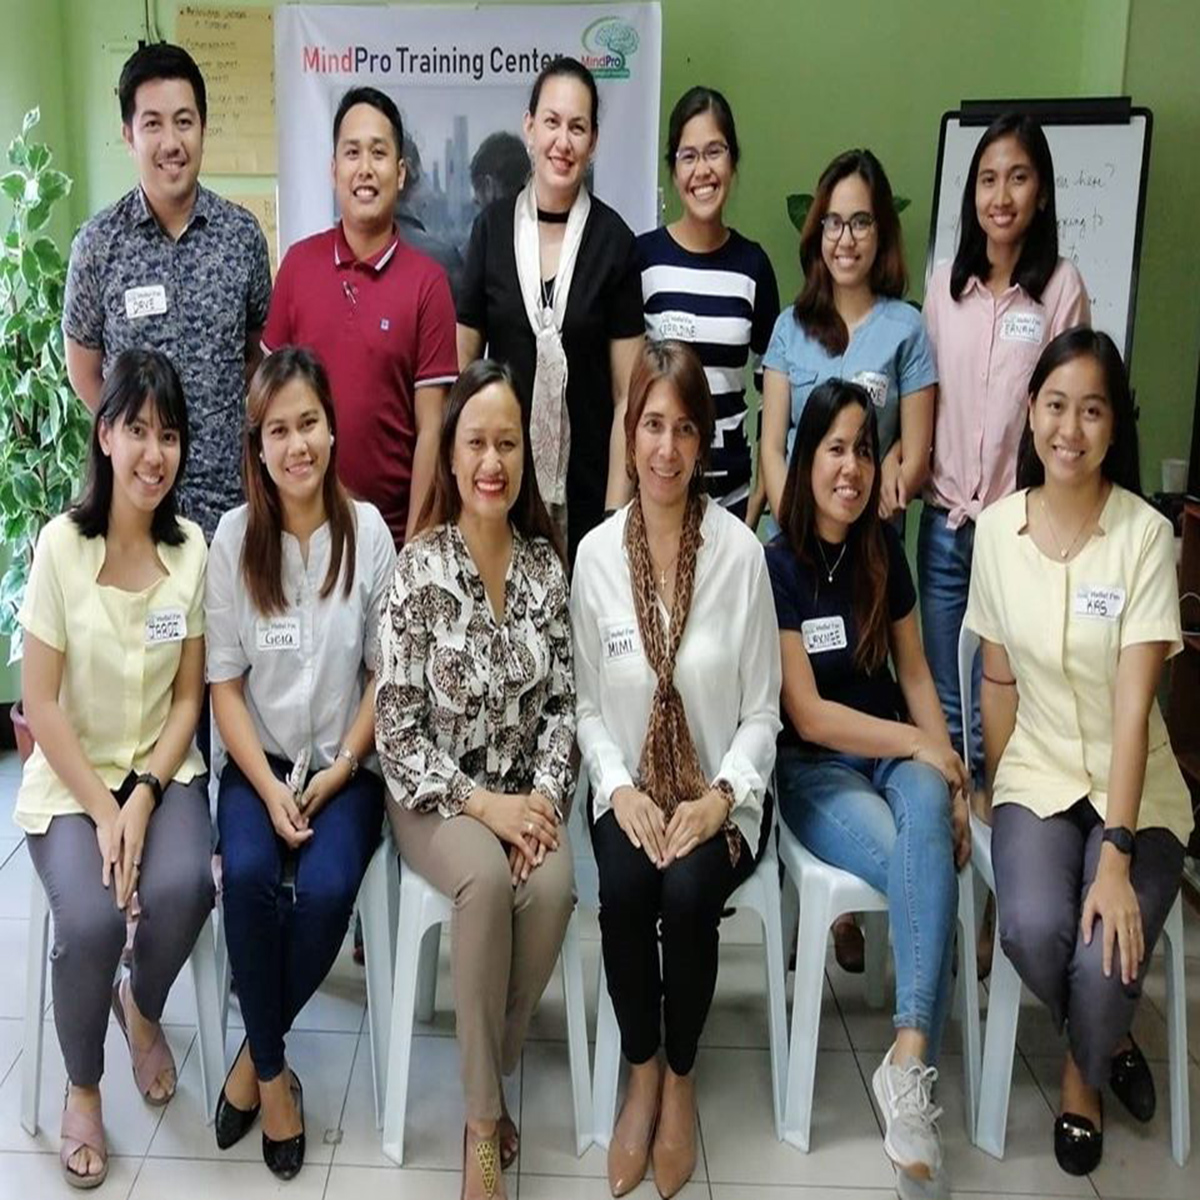 mindprocebu, mindpro pscyhological services, psychological services in cebu, cebu psychologist, dealing with depression, handling depression, psychologist in cebu, mindprocebu.com